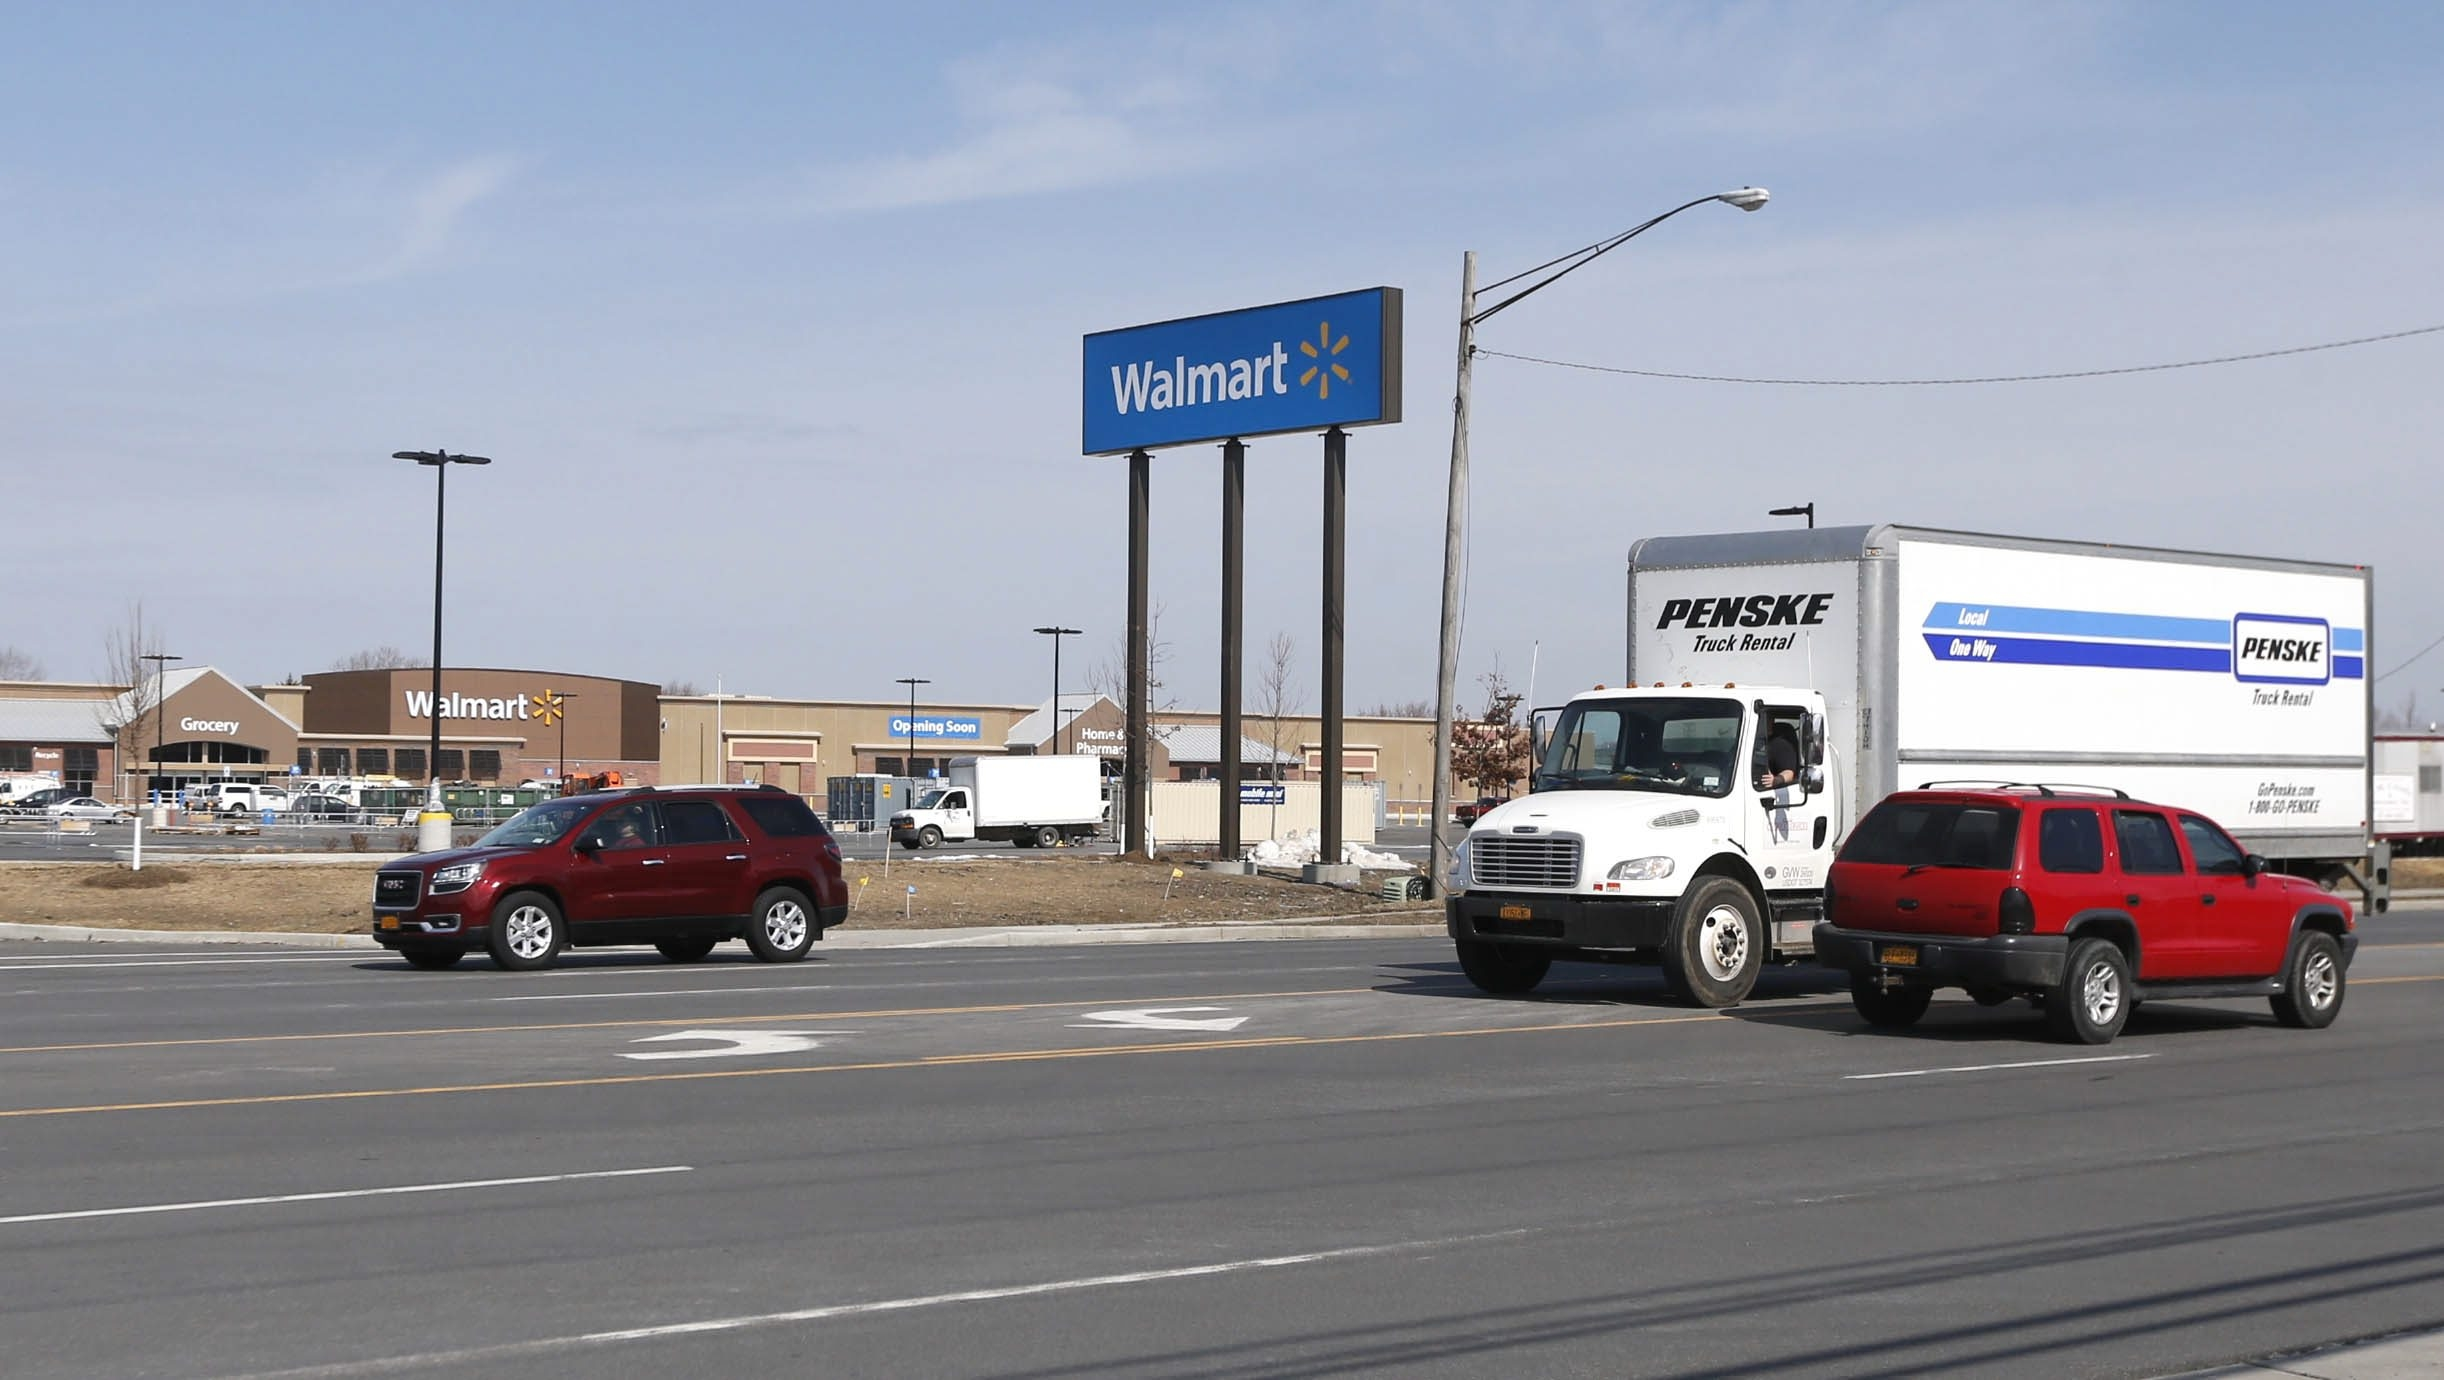 Bus Stop Uncertain At New Walmart Raising Echoes Of Cynthia Wiggins Tragedy The Buffalo News